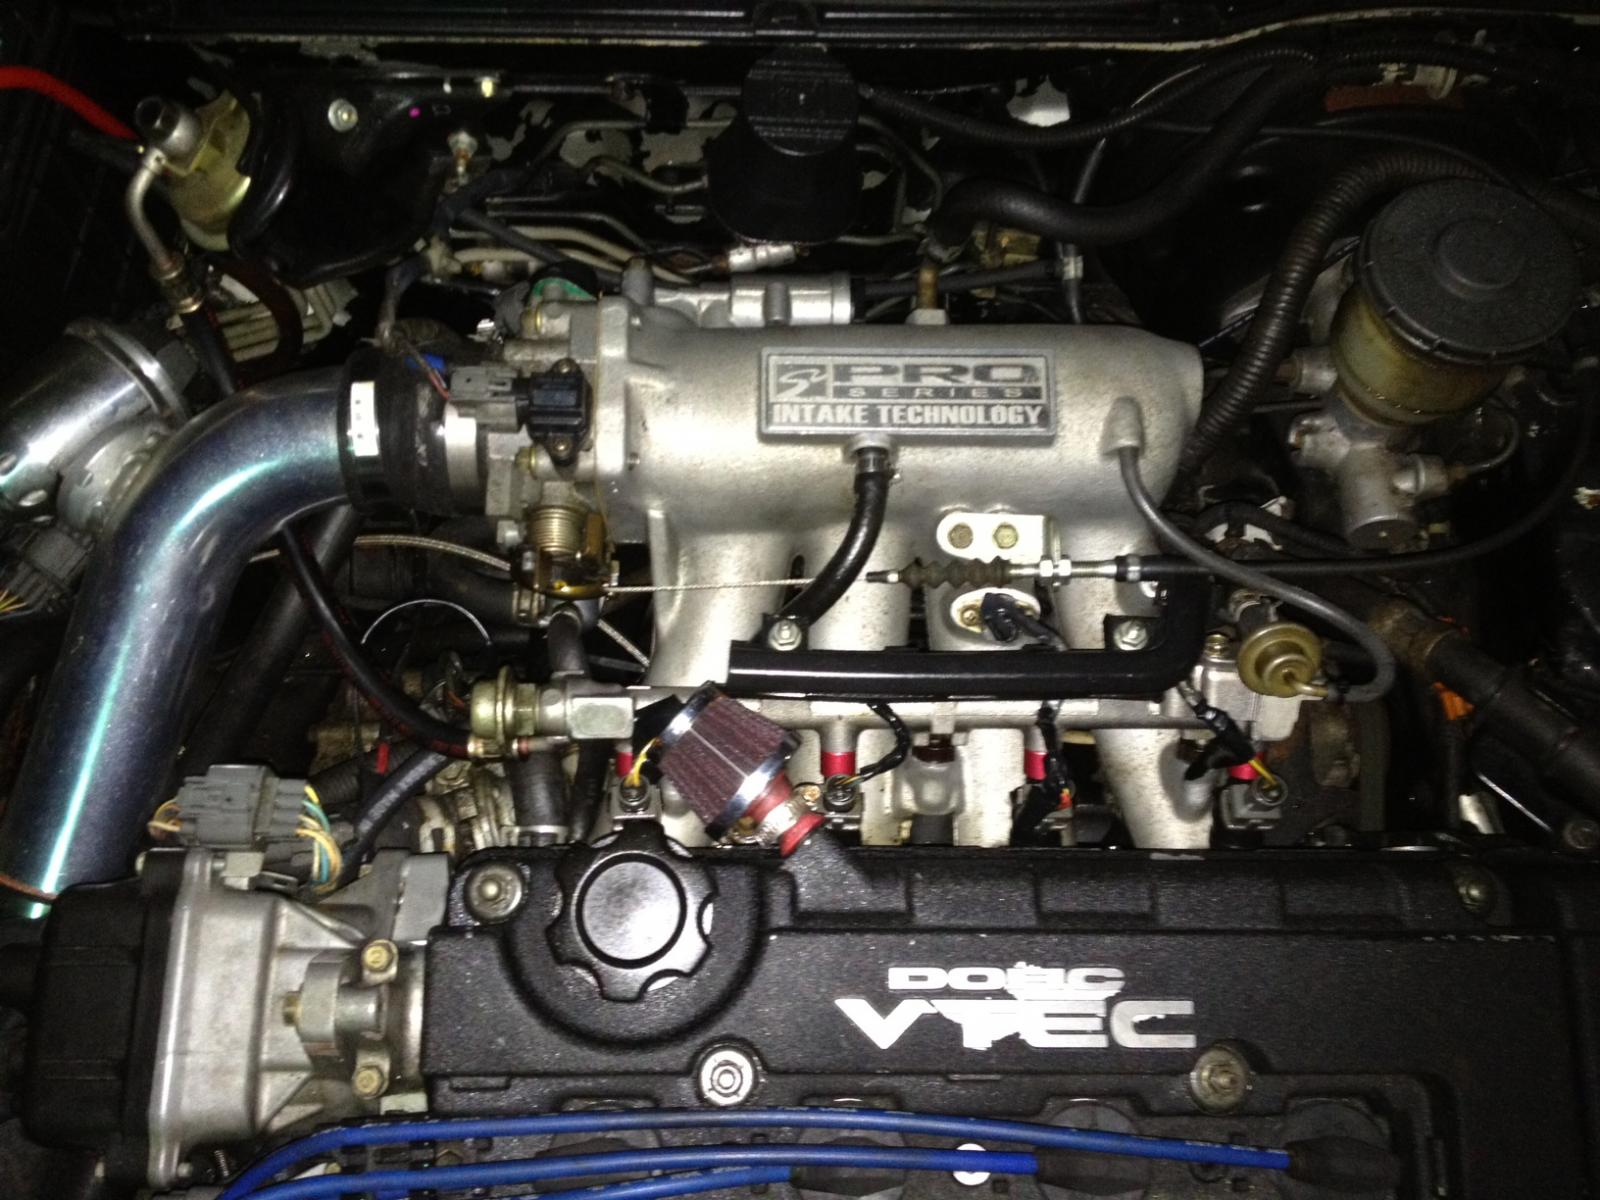 D Burning Oil Oil Coming Out Breather Filter Photo on 97 Integra Gsr